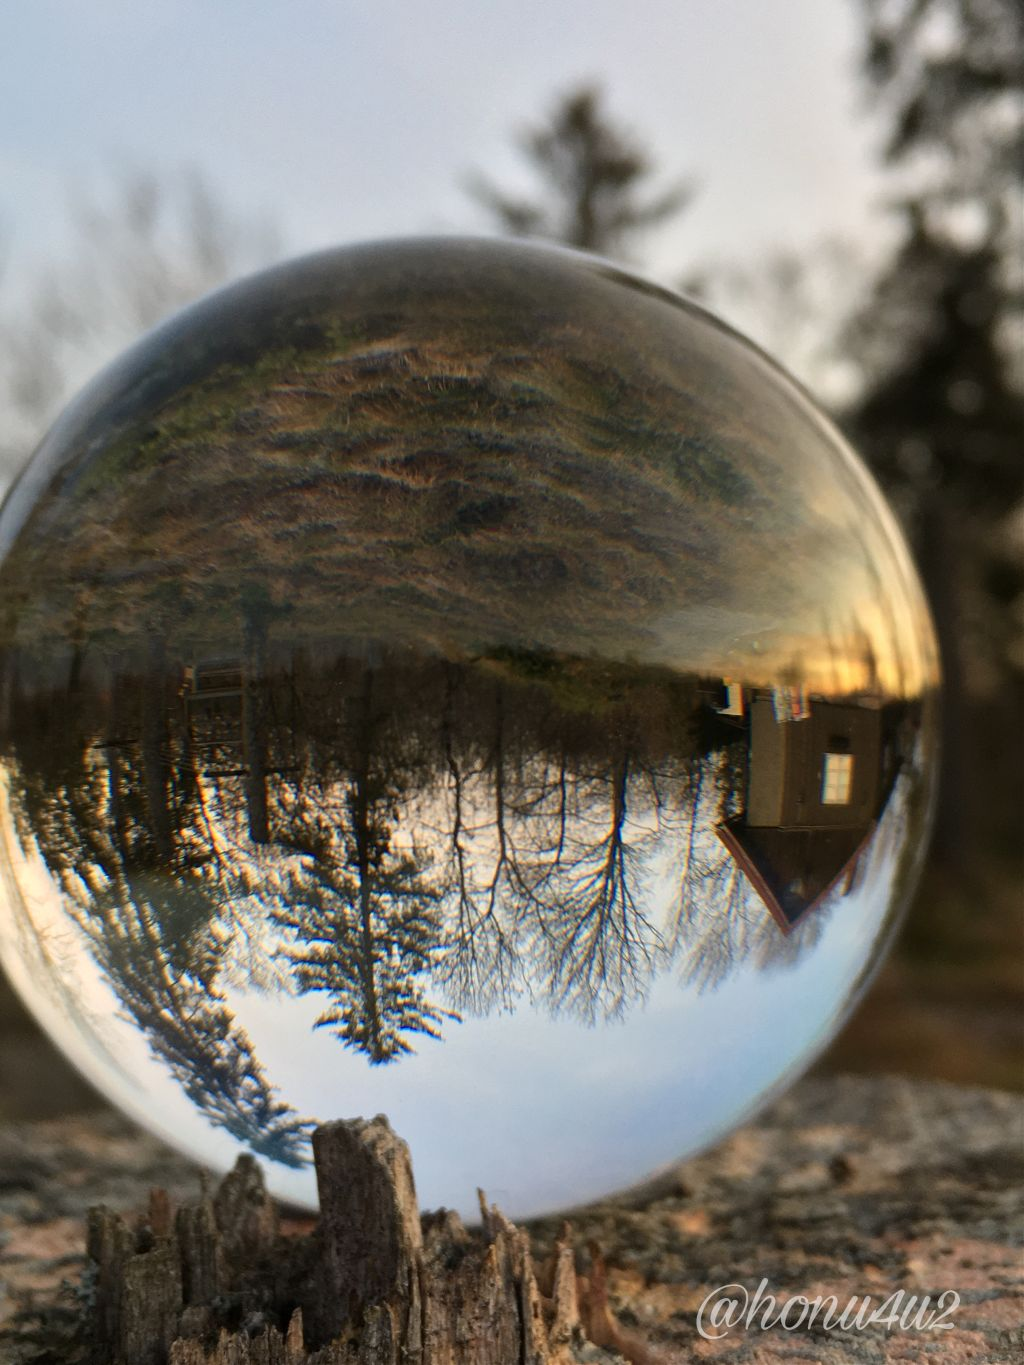 #magicball #october #cold #crisp #morning #sunrise #myplace #trees#upsidedown